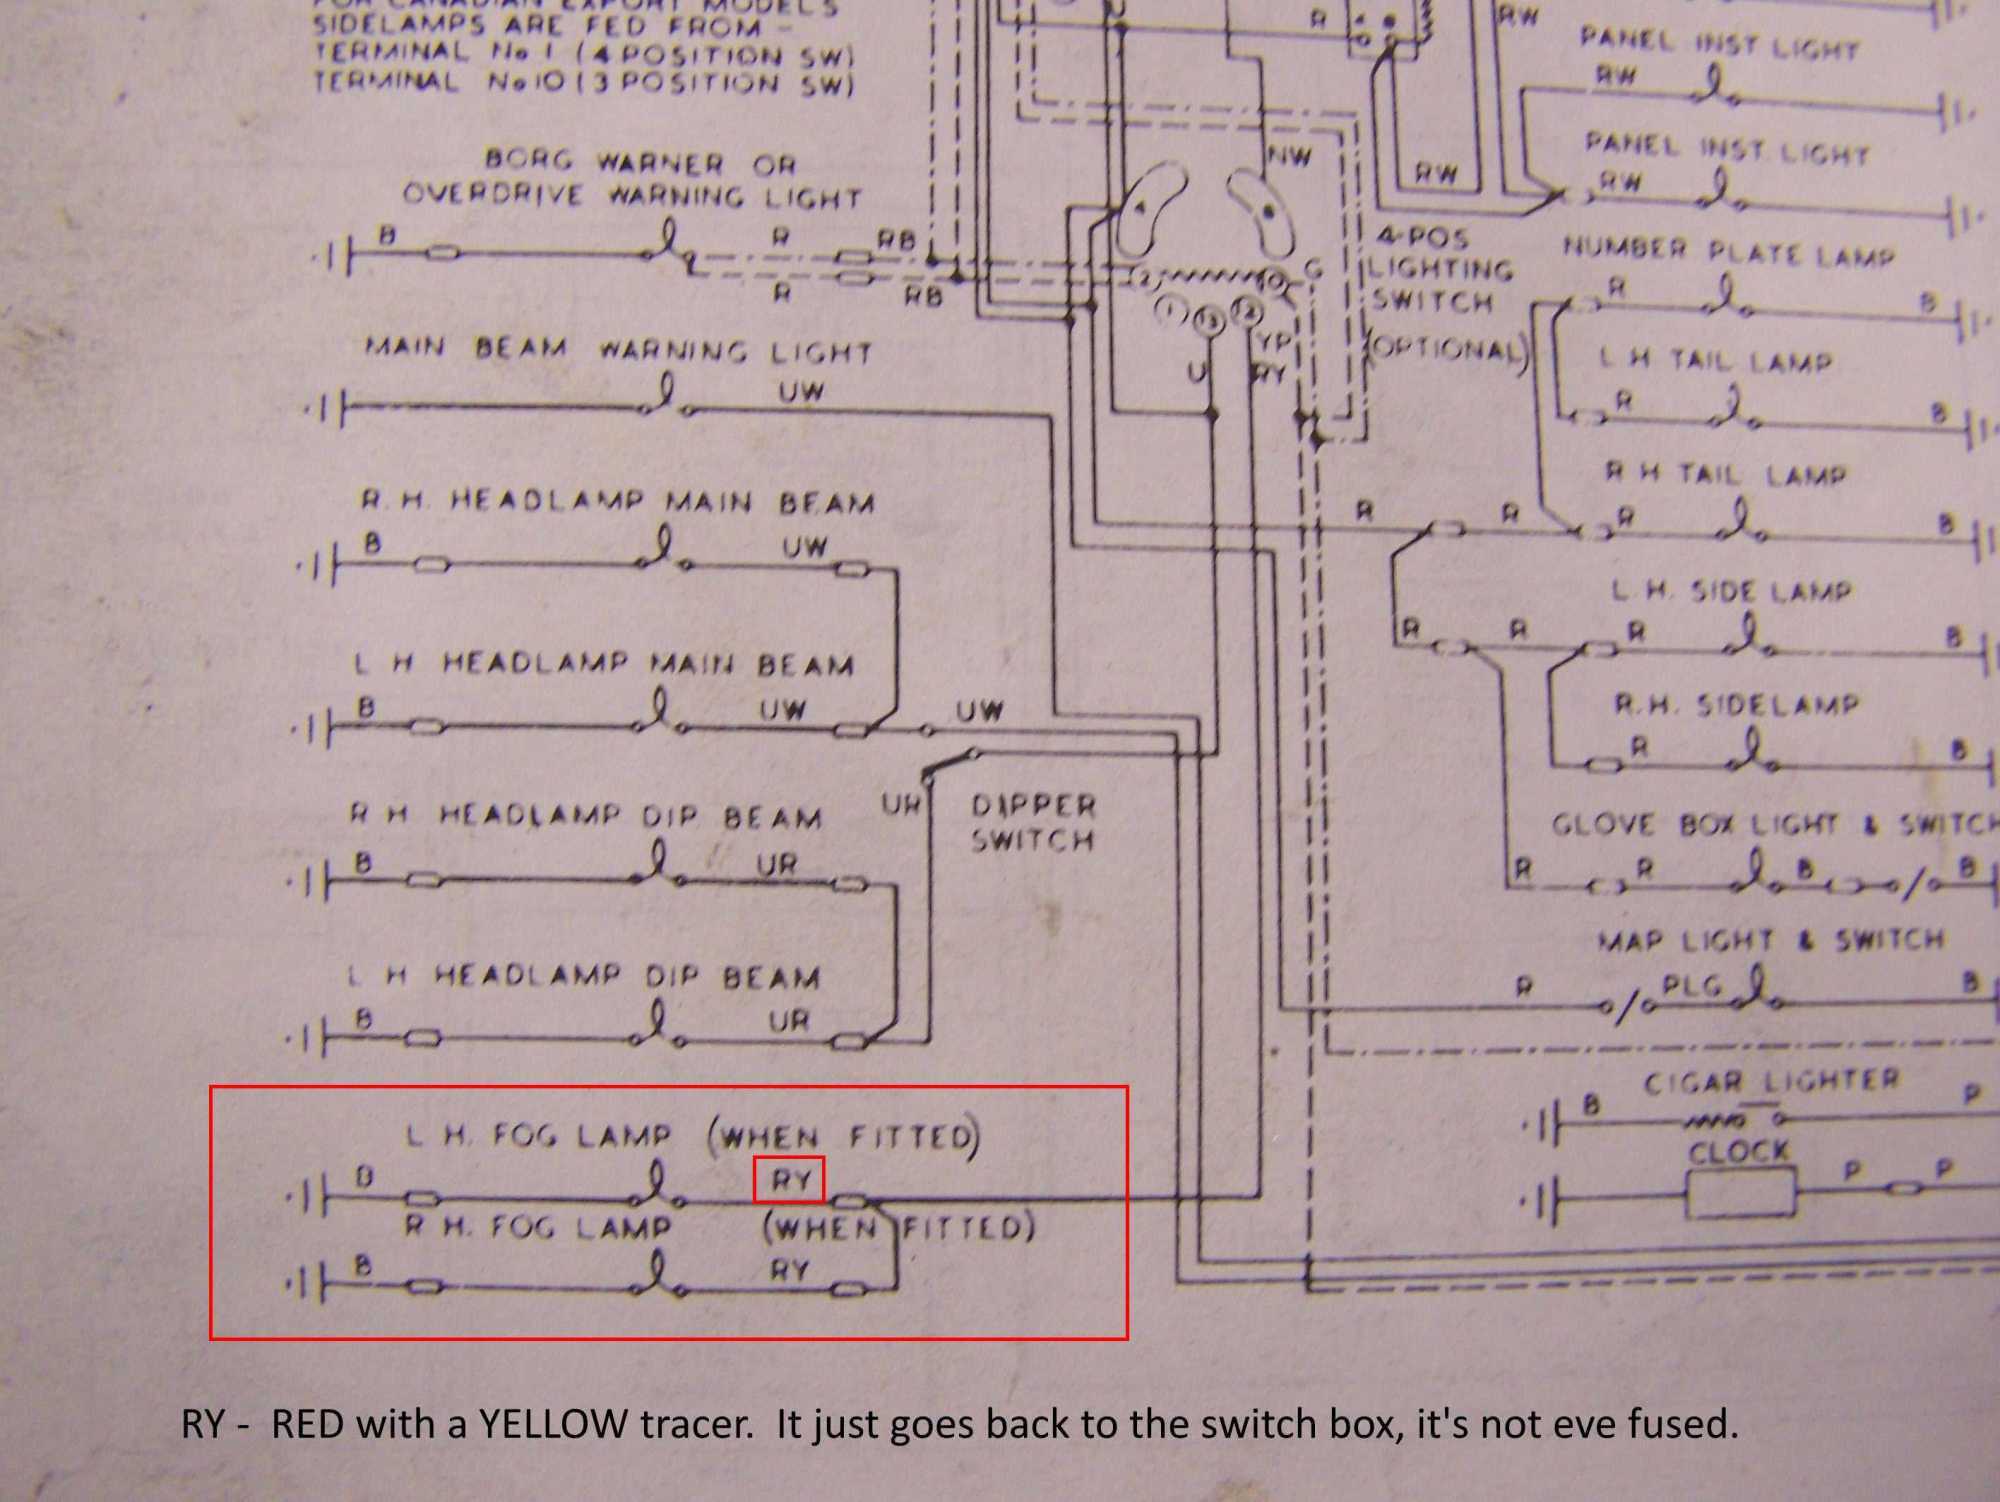 hight resolution of  mystery wires on wiper loom 100 2101 jpg